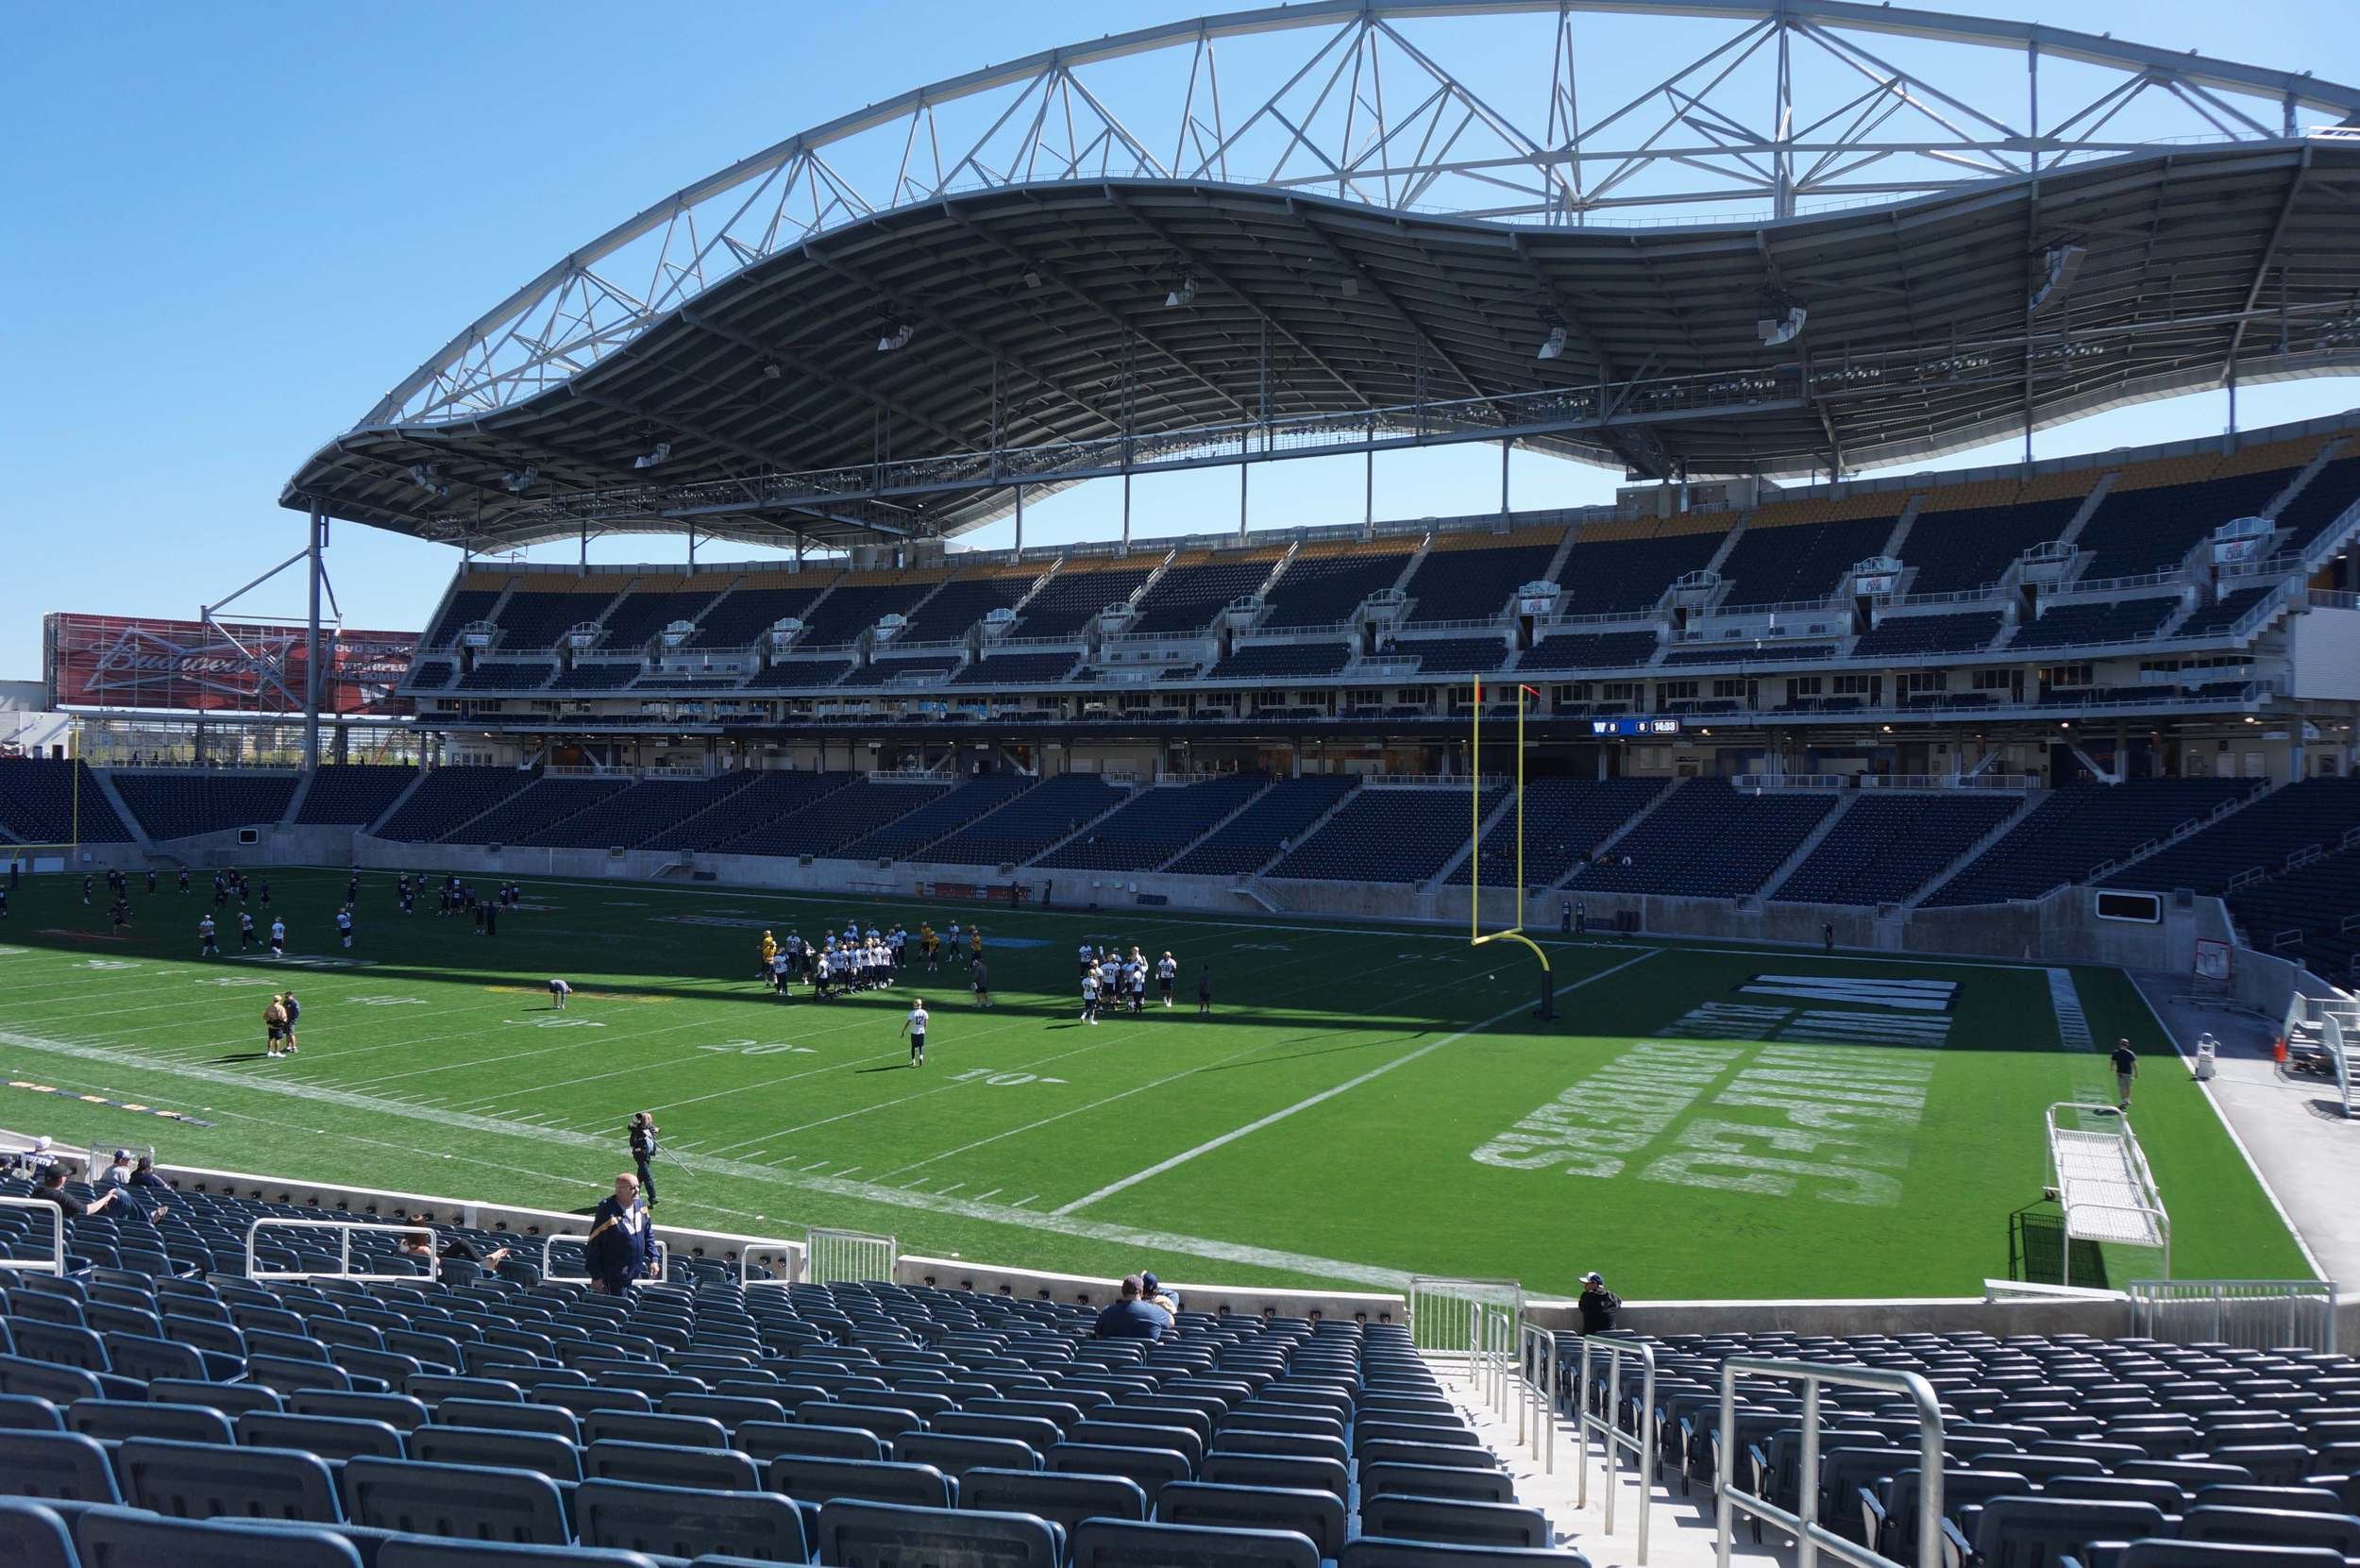 Winnipeg's new Investors Group Field cost $204 million to build. It will only be used to its maximum for 8 or 9 games a year.